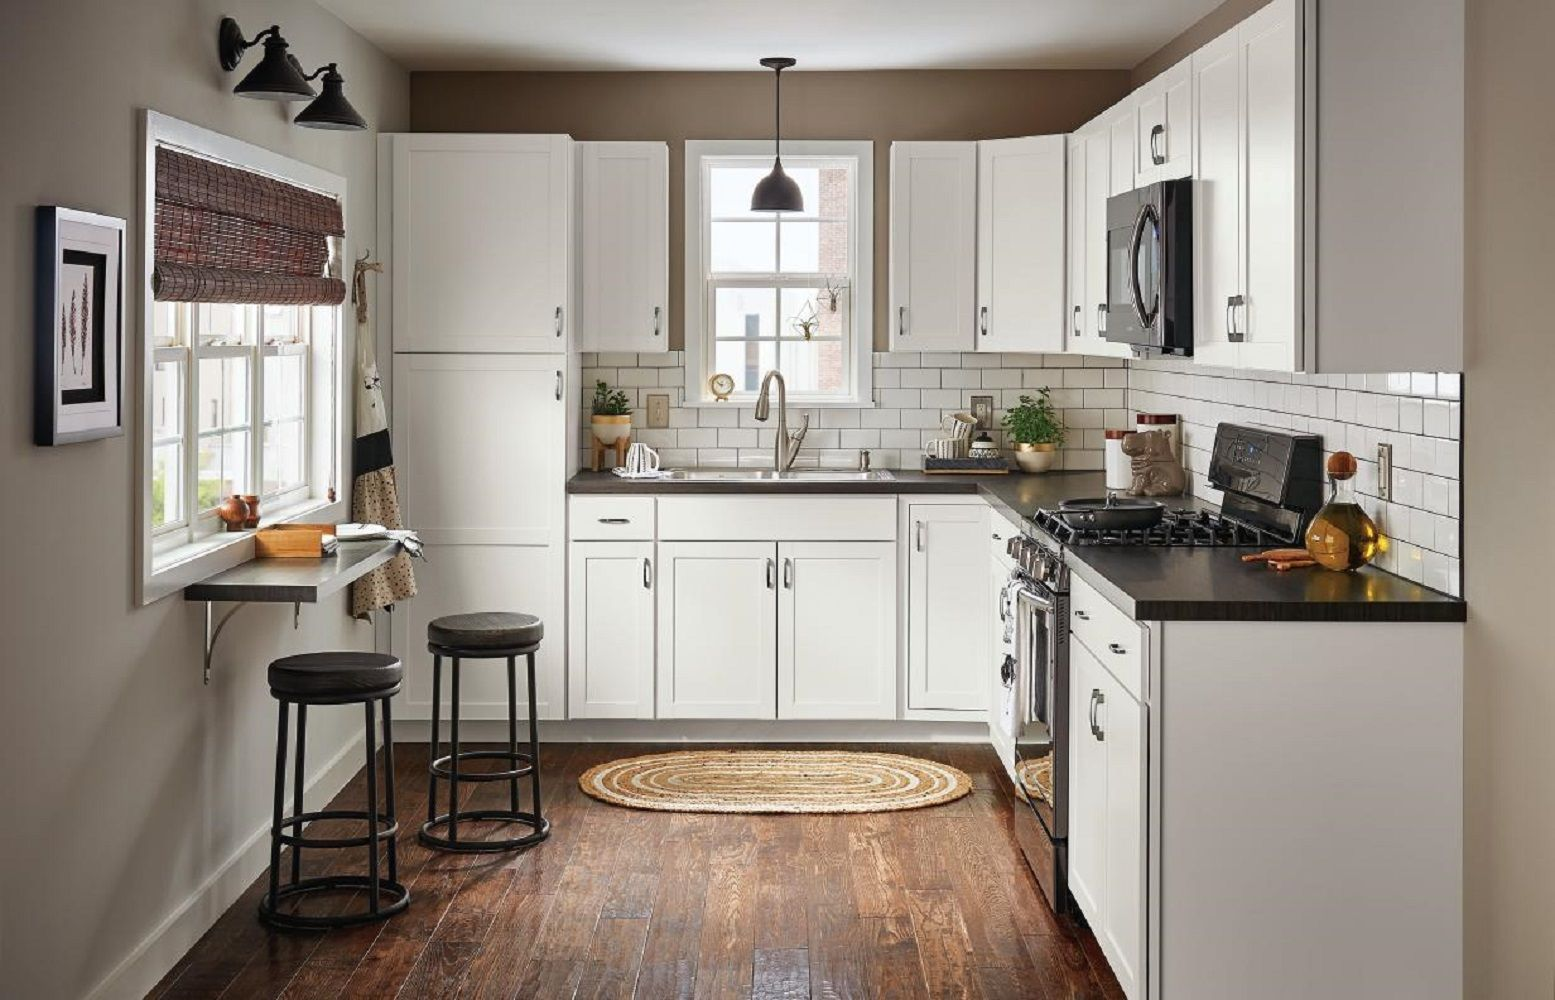 Kitchen Cabinetry Ideas And Inspiration At Value Prices Be Inspired By Stock Cabinets Interior Design Kitchen Small Interior Design Kitchen Contemporary